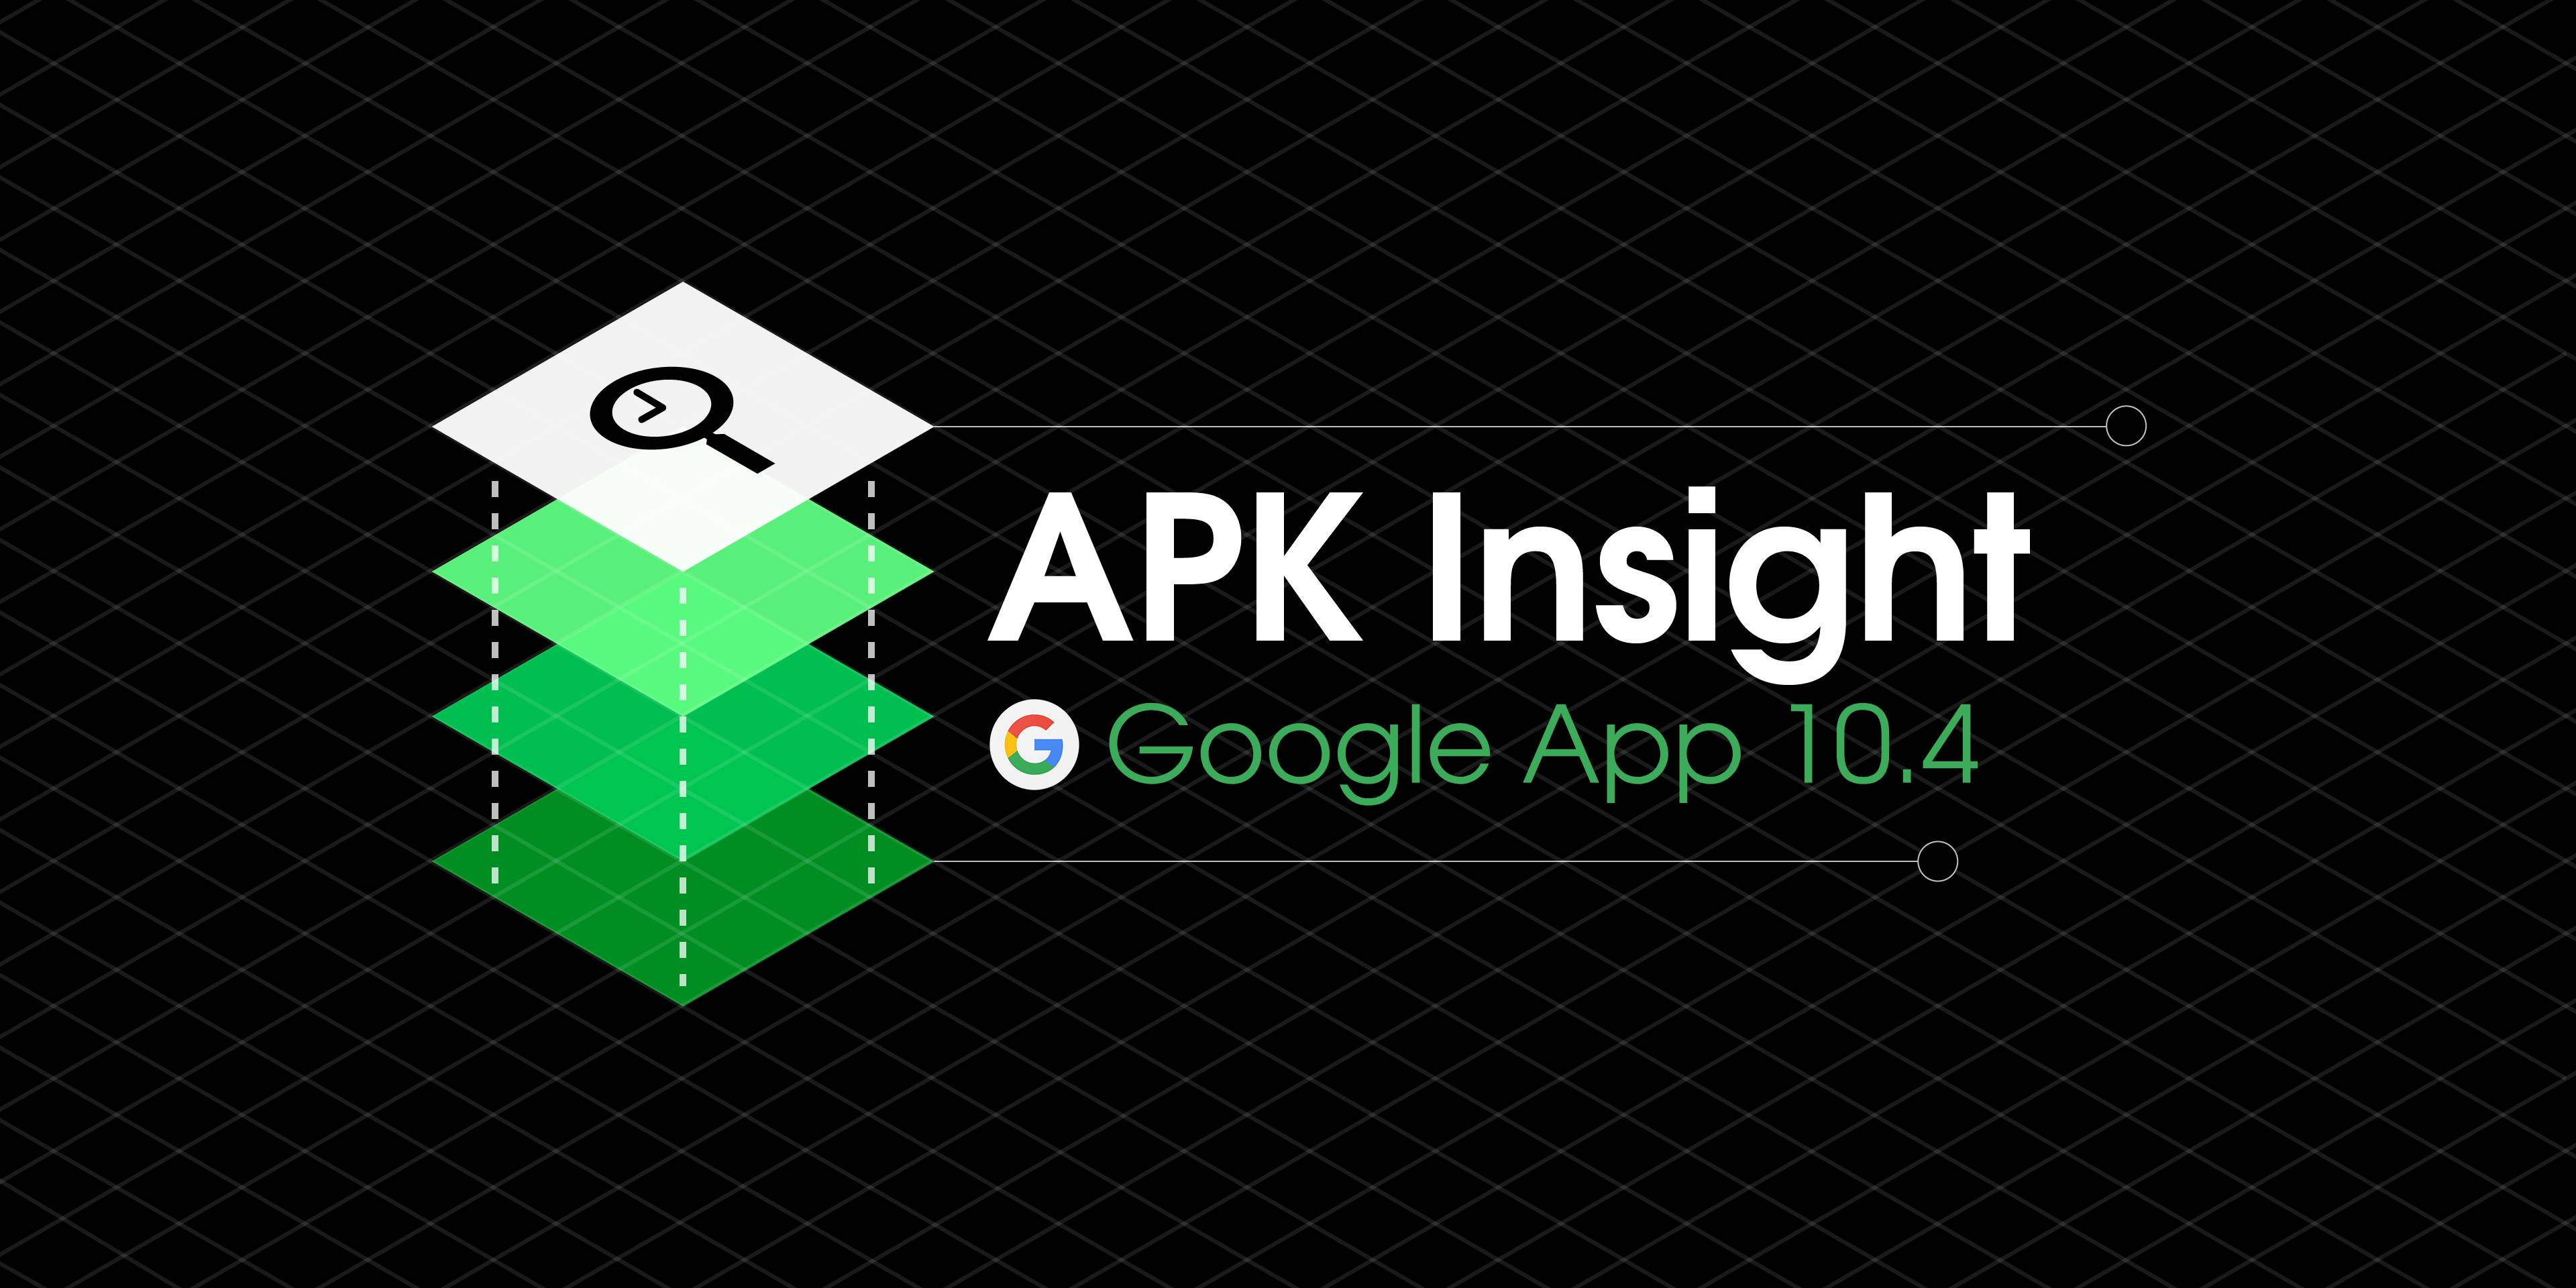 Google app 10.4 hints at Assistant lockscreen suggestions, adds Google One ring [APK Insight]